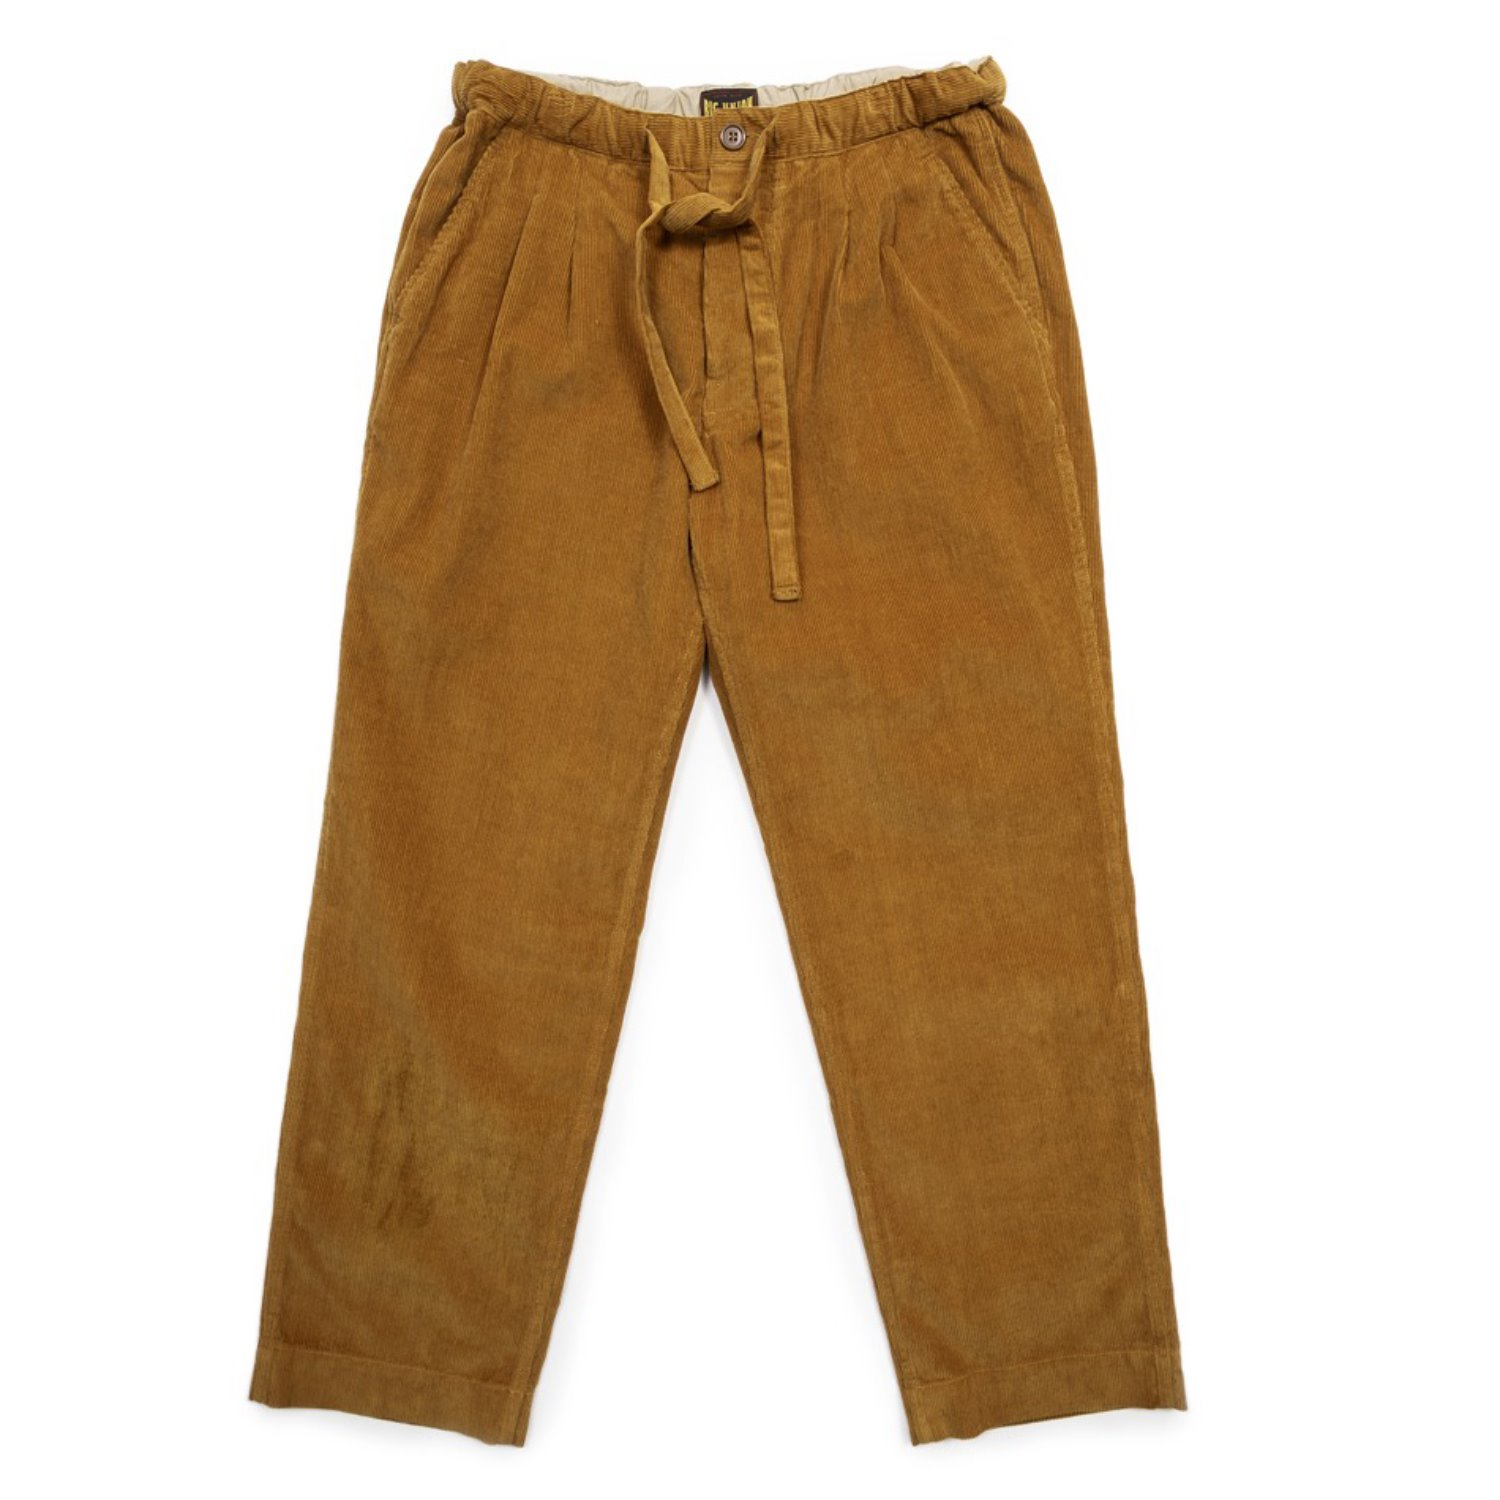 Corduroy Easy Pants (Camel)